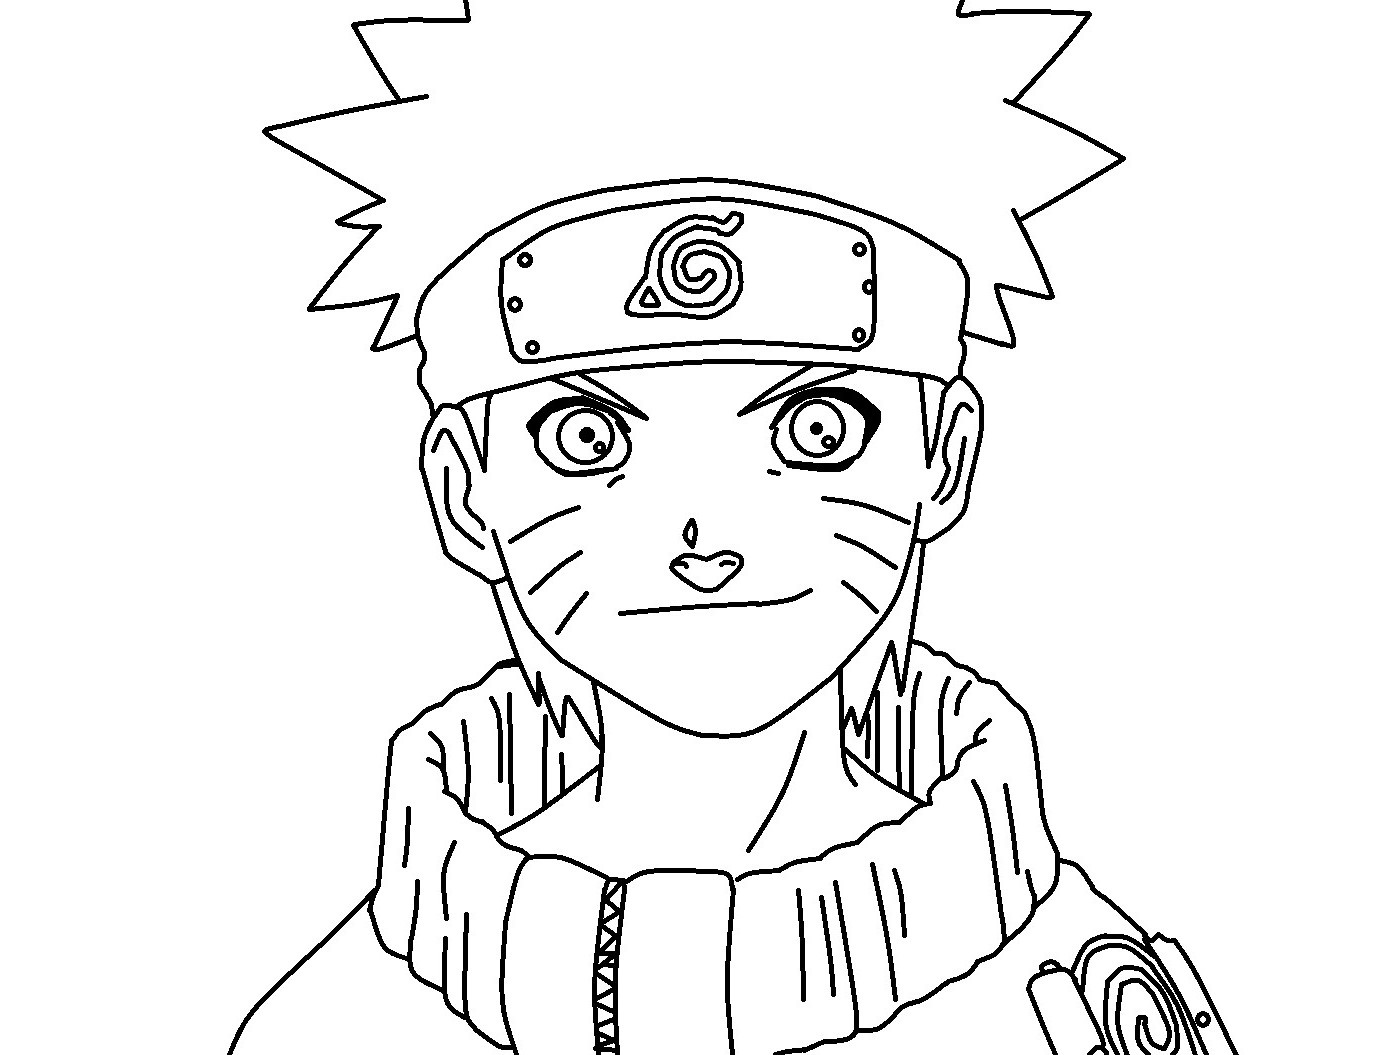 naruto coloring page with shadow 01